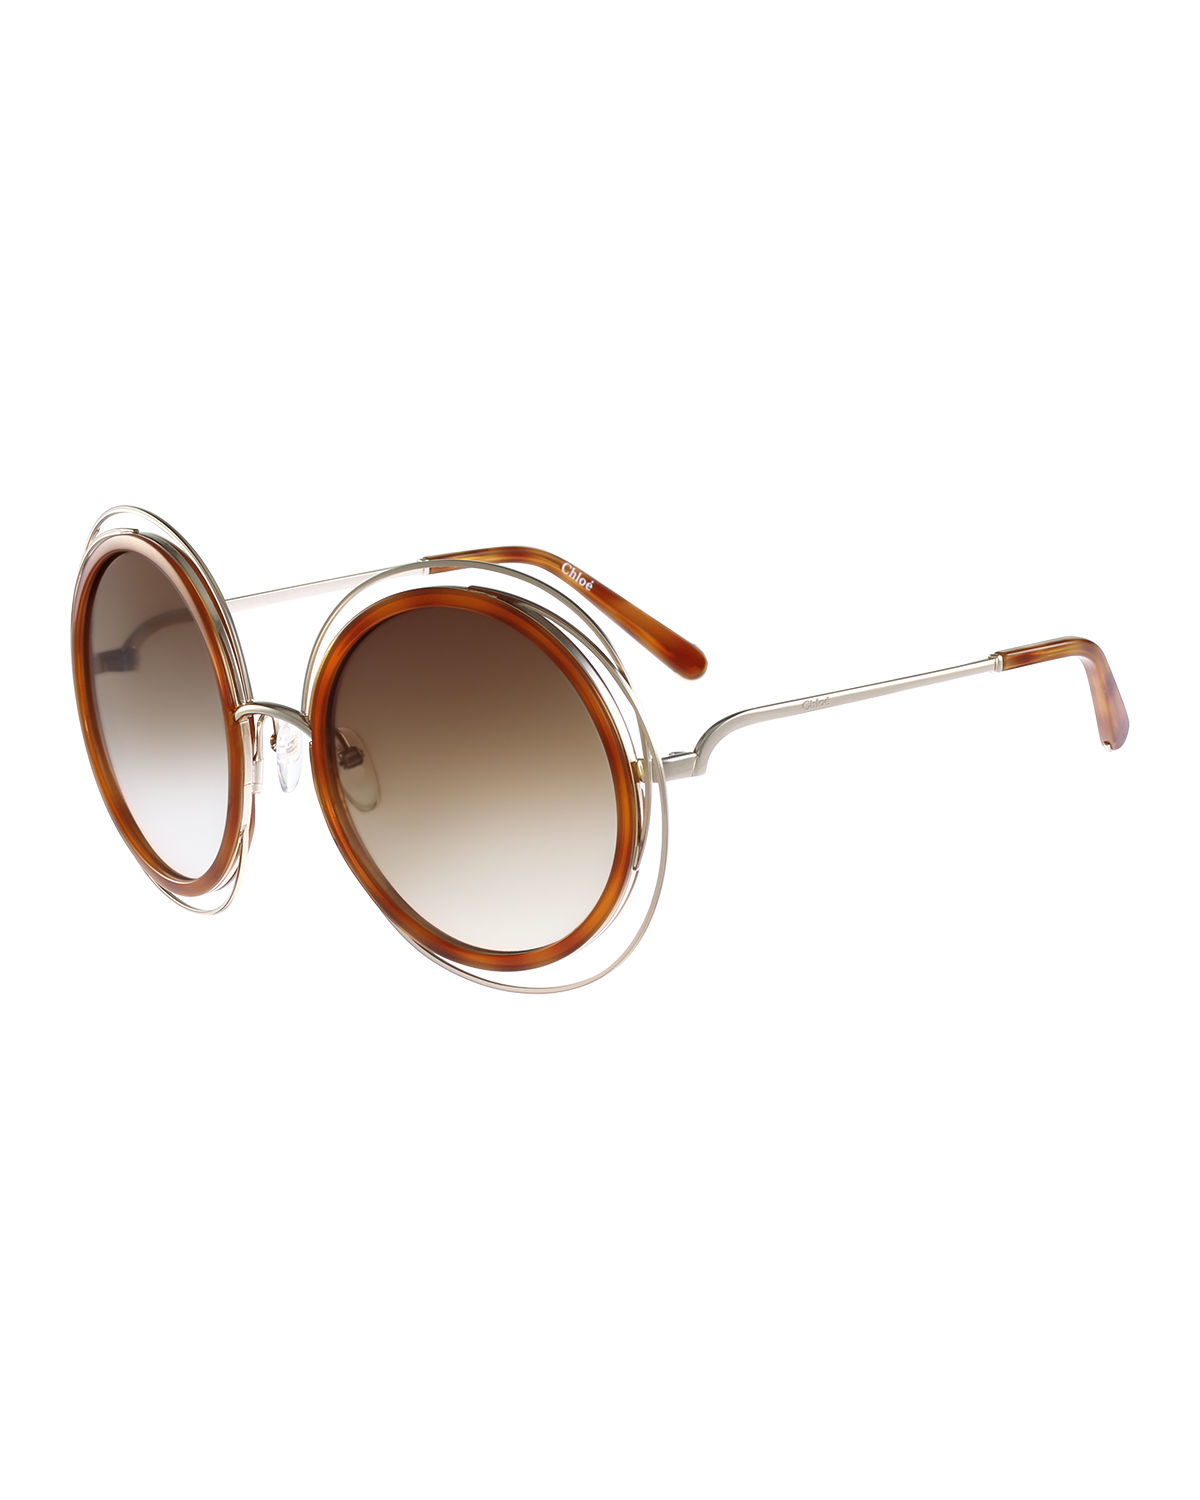 84f5b20bbb Lyst - Chloé Carlina Trimmed Round Sunglasses in Red